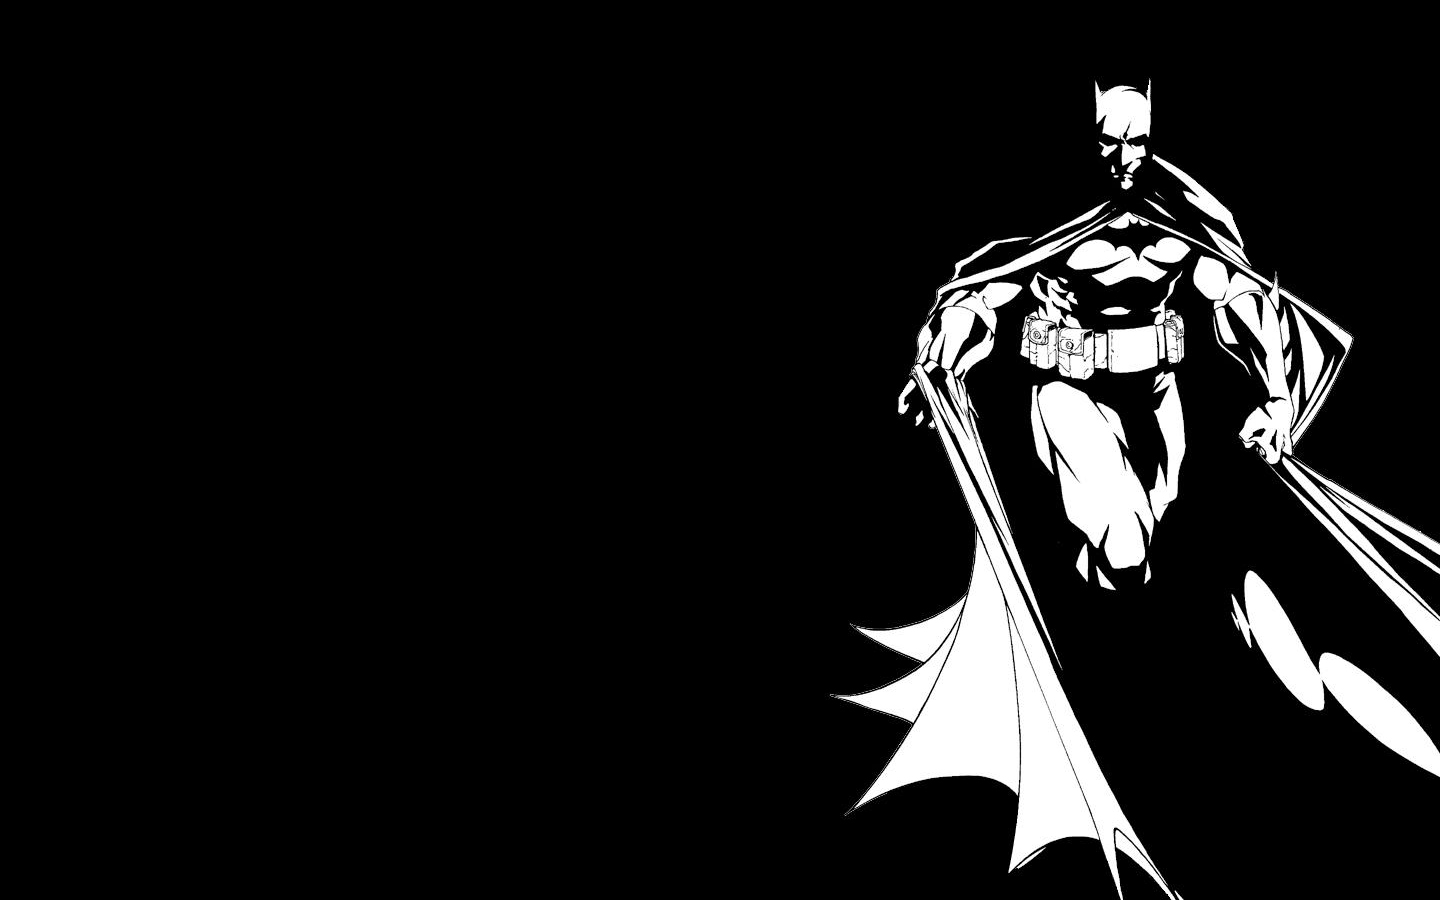 Batman Wallpapers Wallpapers HD Quality 1440x900